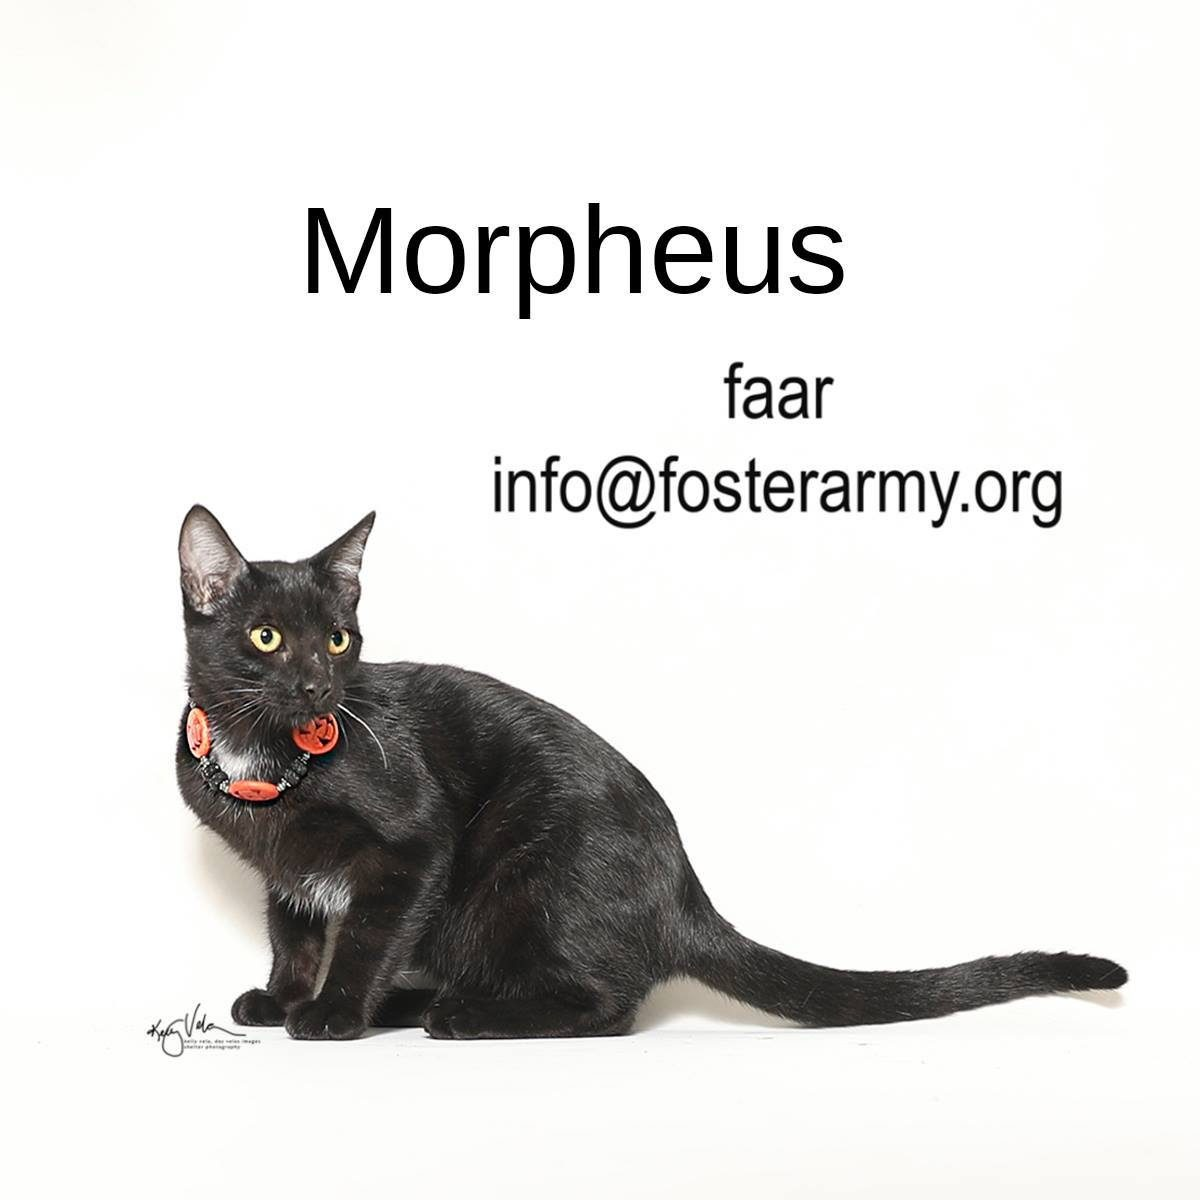 Adopt Morpheus the worlds coolest kitty with Foster Army Animal Rescue in Riverside, CA